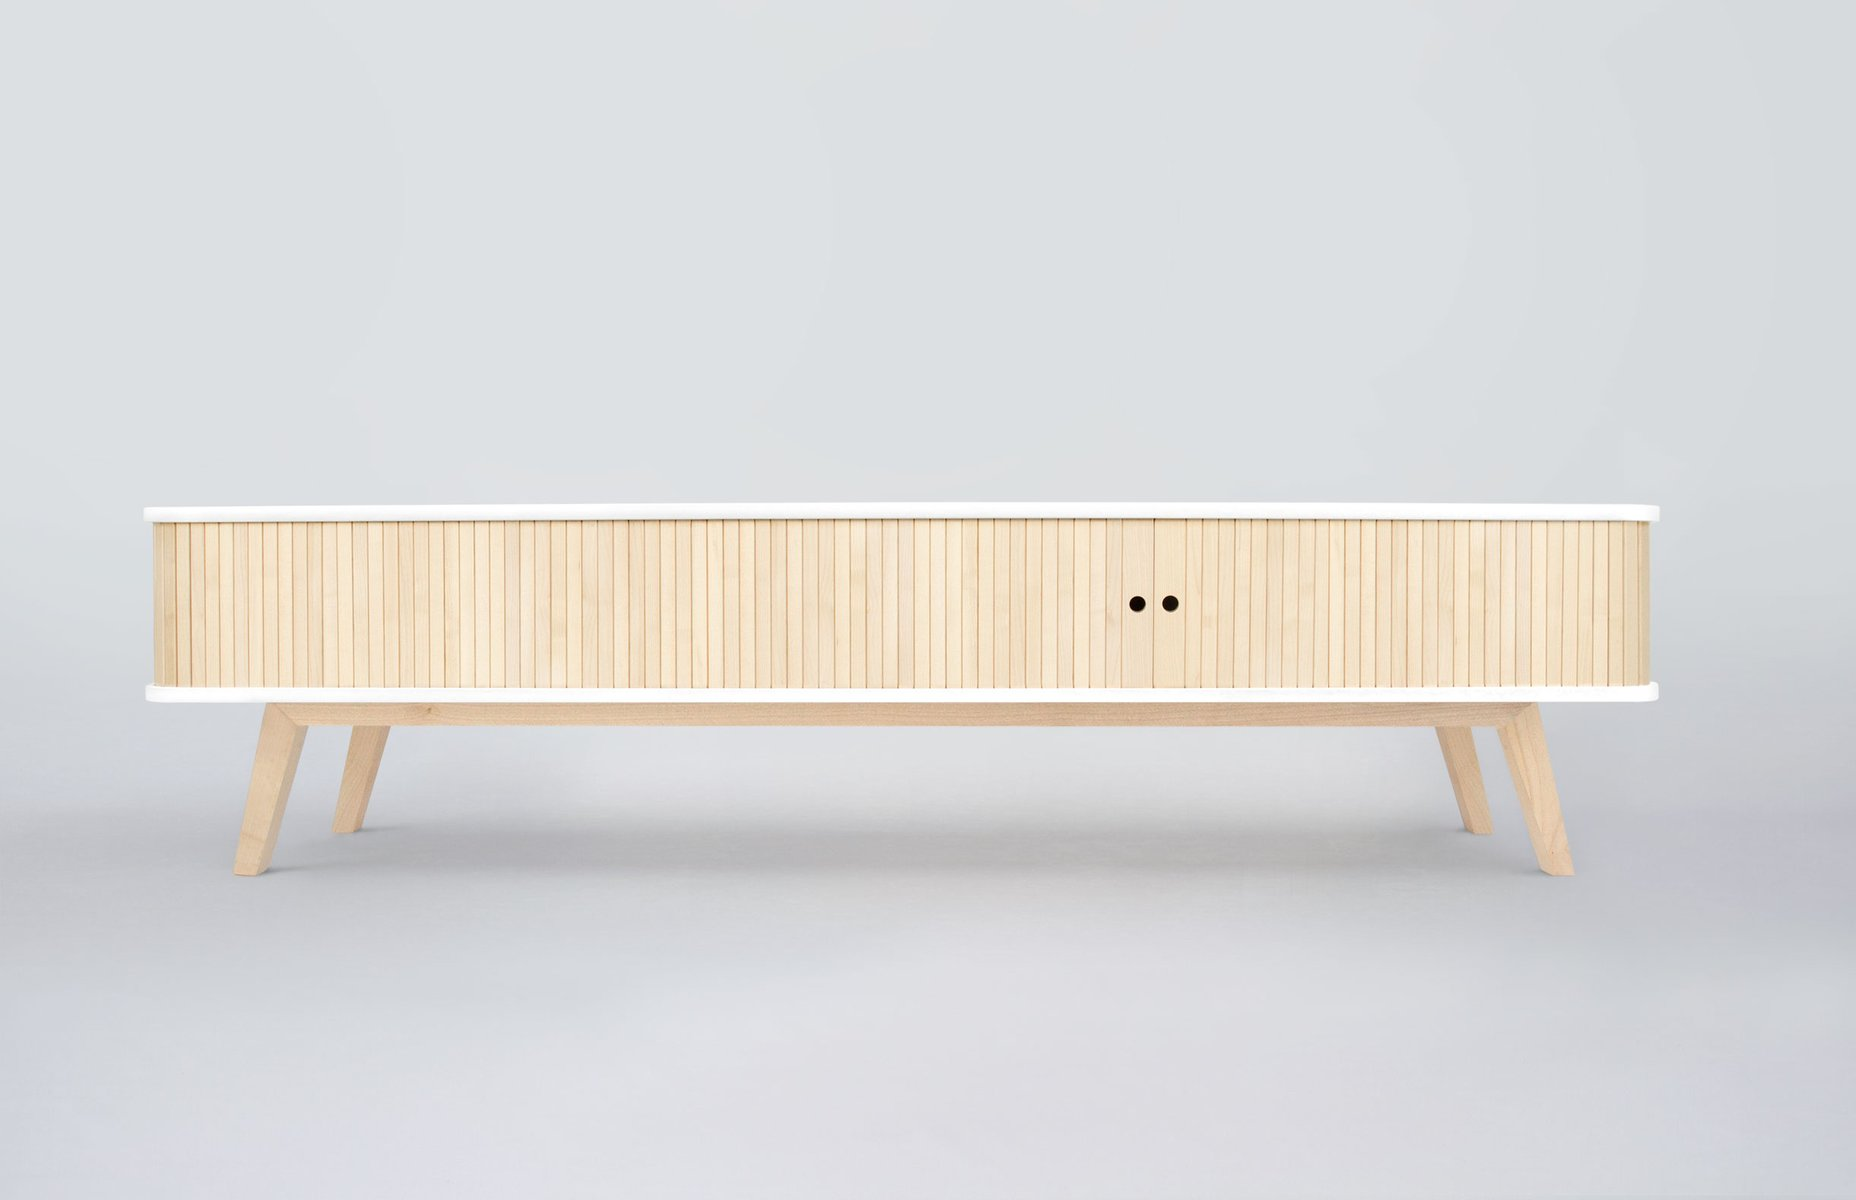 Hk0 5 sideboard by mo ow for sale at pamono for Sideboard 2 m breit